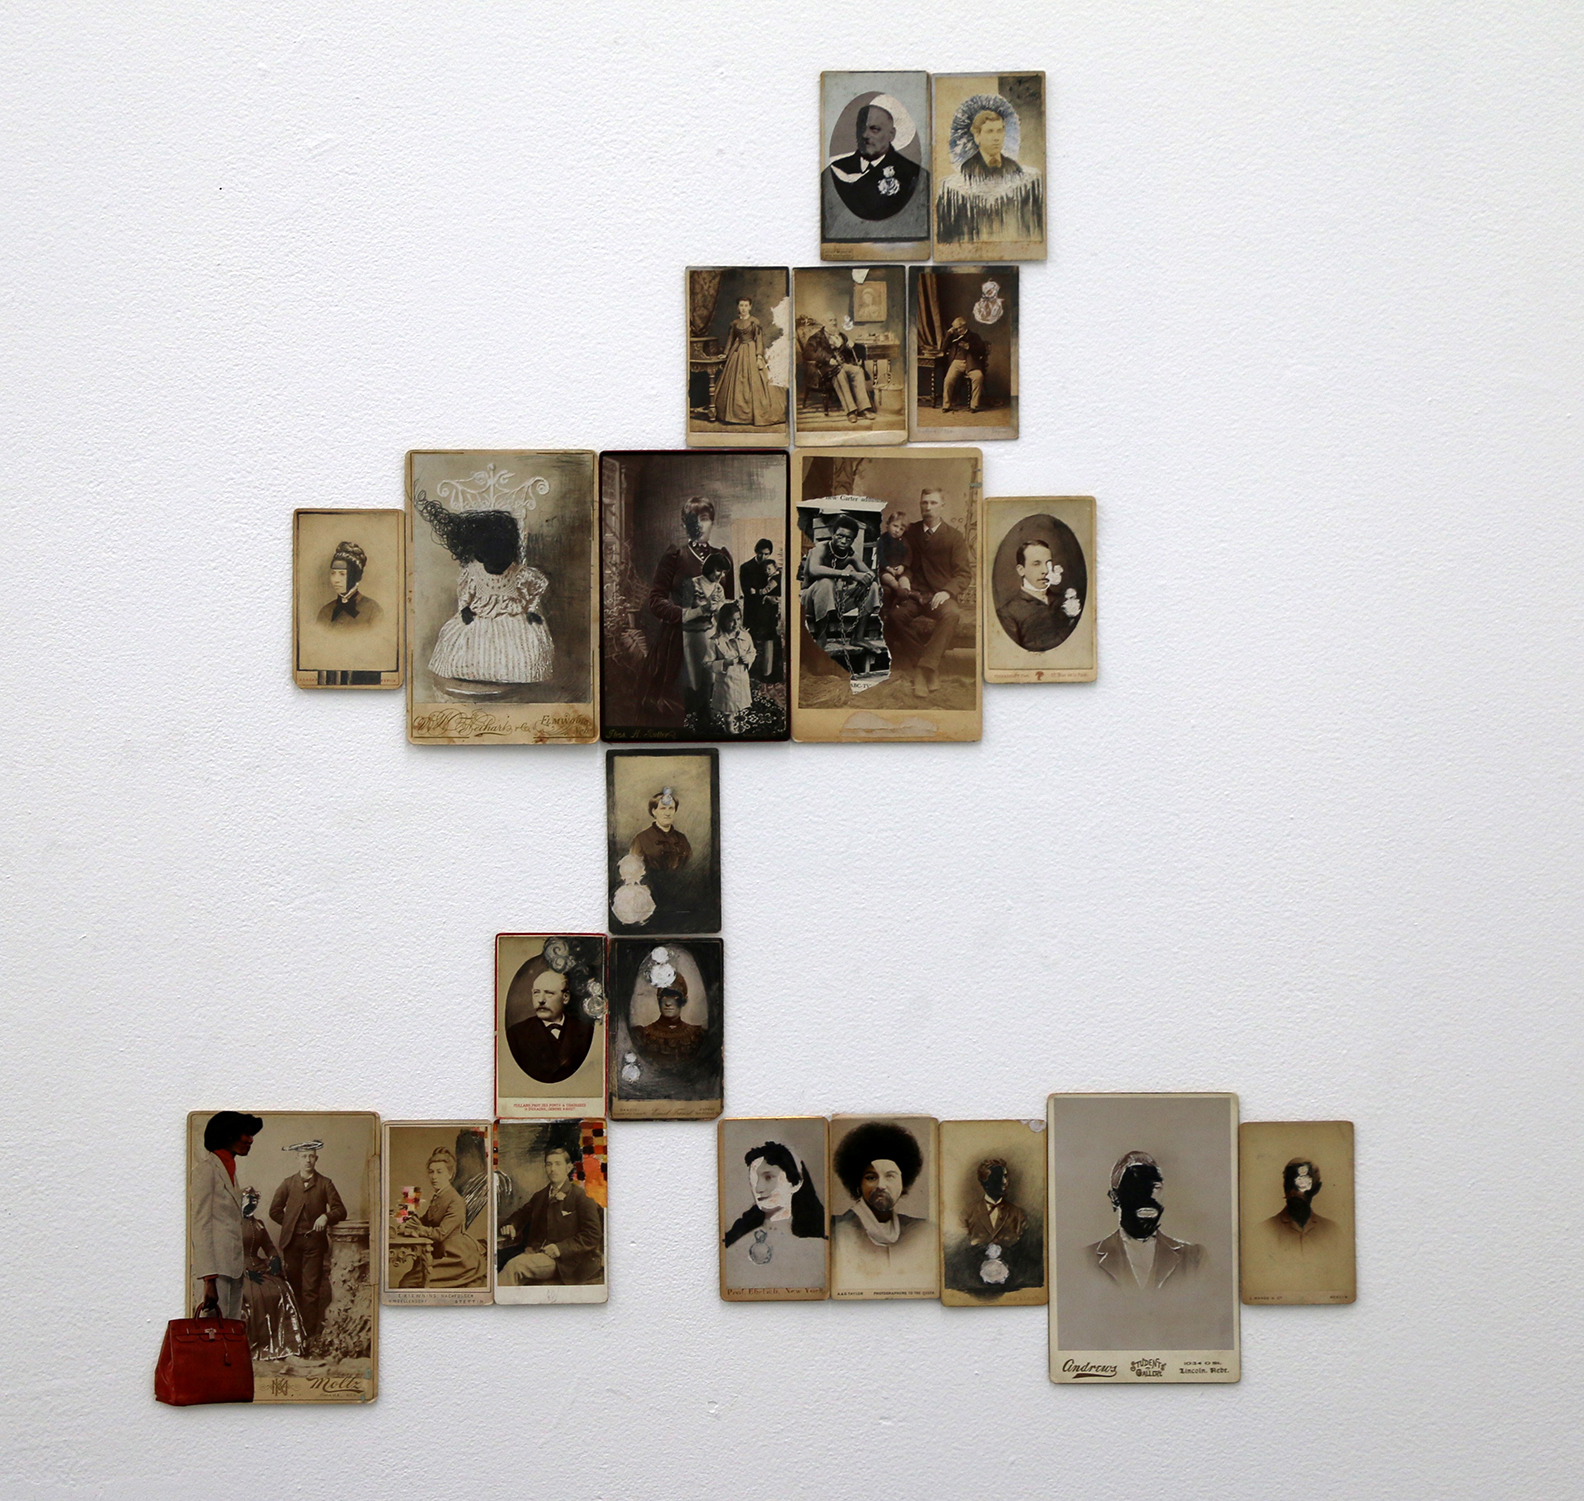 JESSICA WIMBLEY, Cabinet Cards, 2015, mixed media, dimensions variable